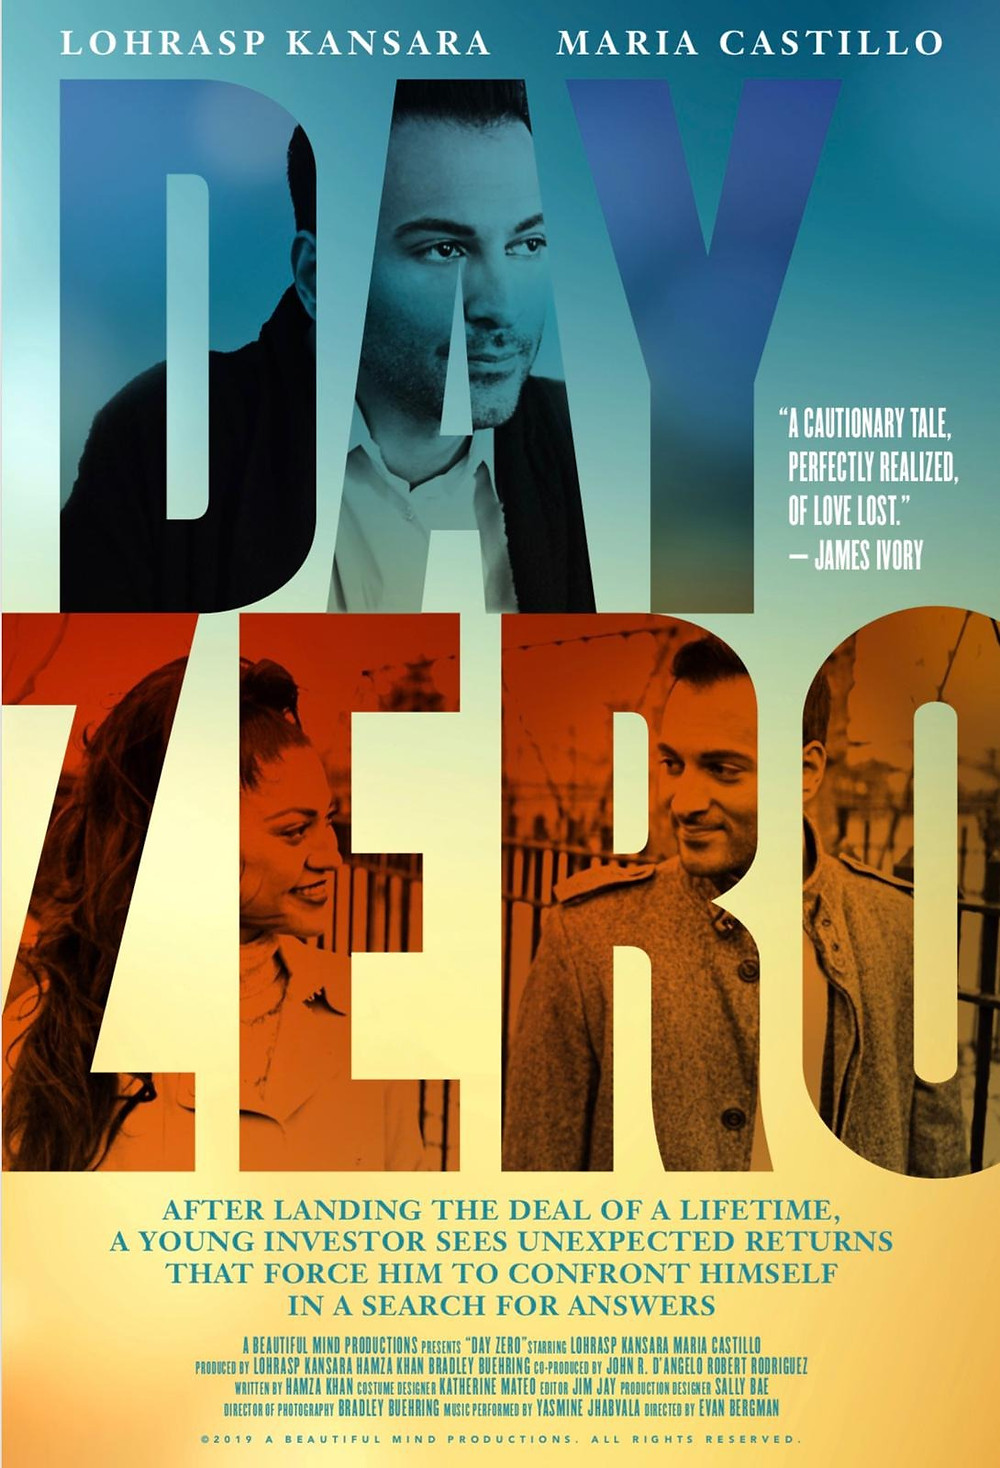 Poster for Day Zero showing protagonists Lohrasp Kansara and Maria Castillo.